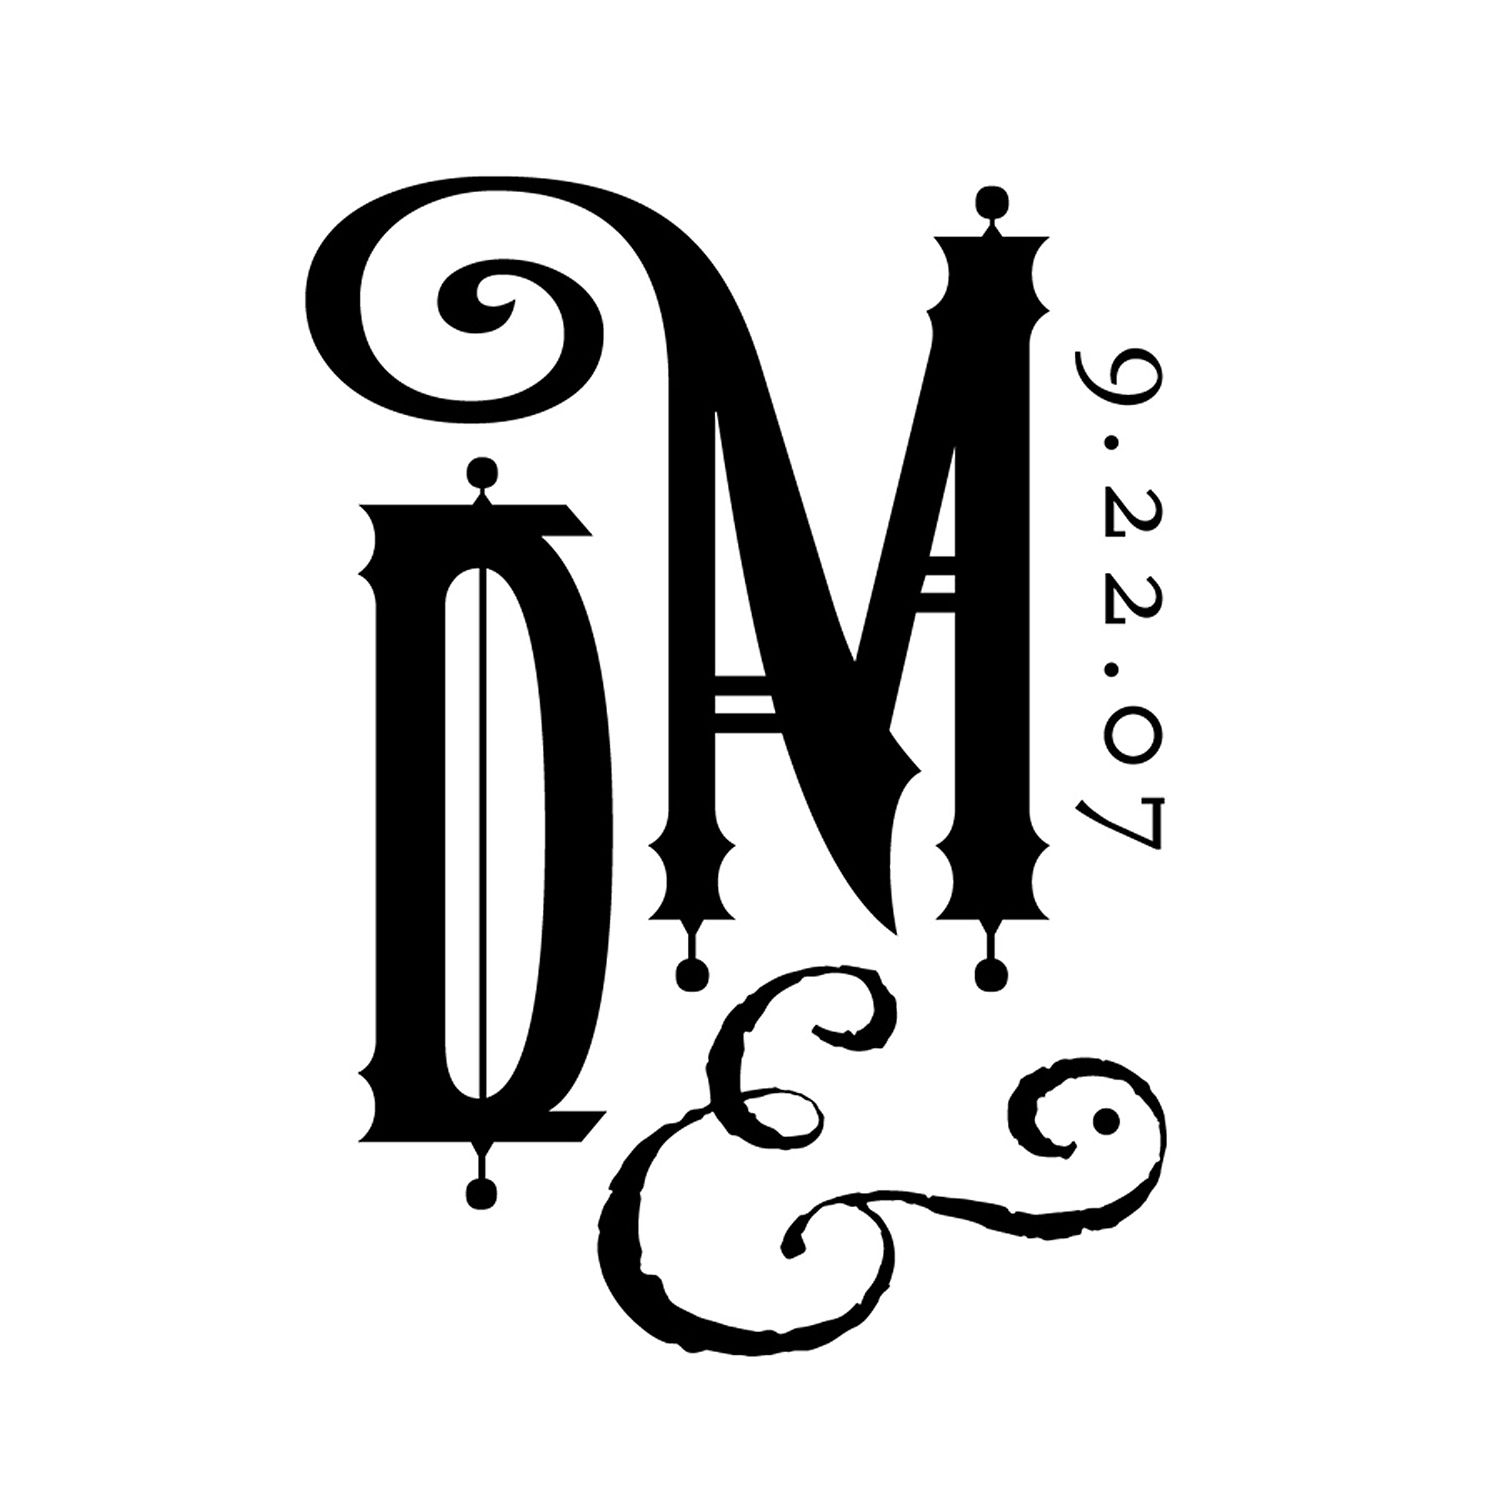 DAVID & MICHELLE   |   wedding logo